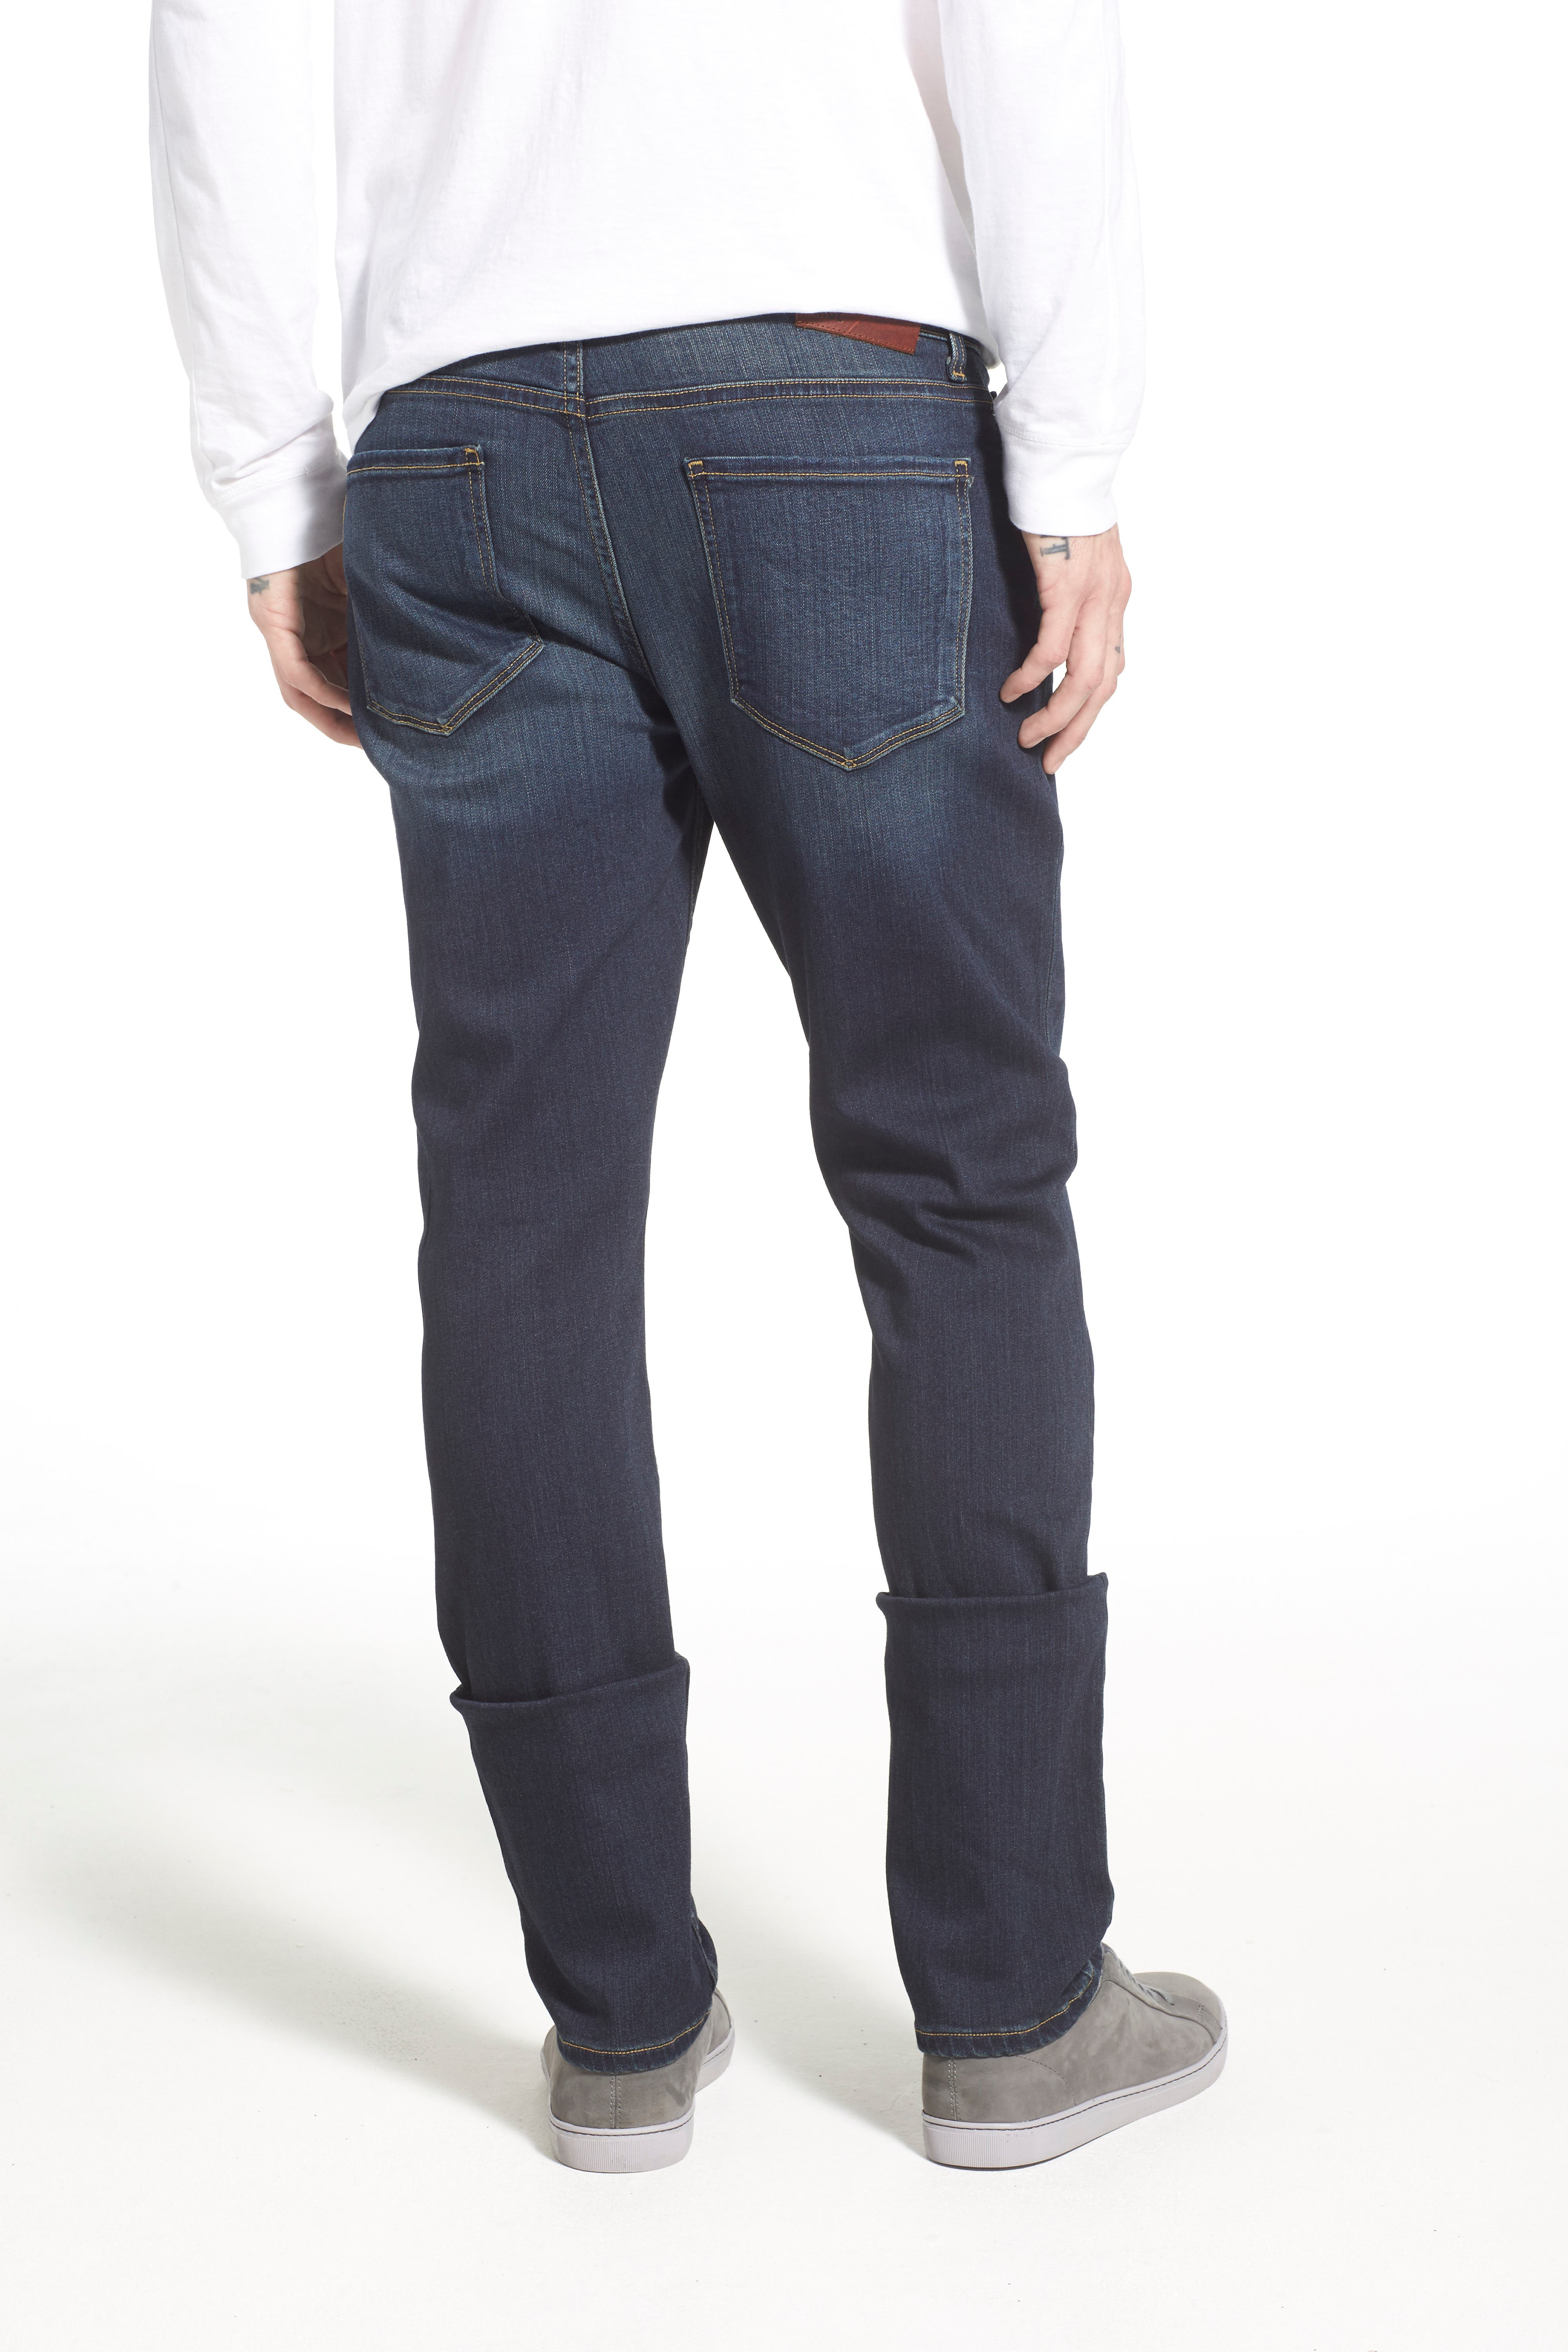 PAIGE, Lennox Slim Fit Jeans, Alternate thumbnail 3, color, RIGBY